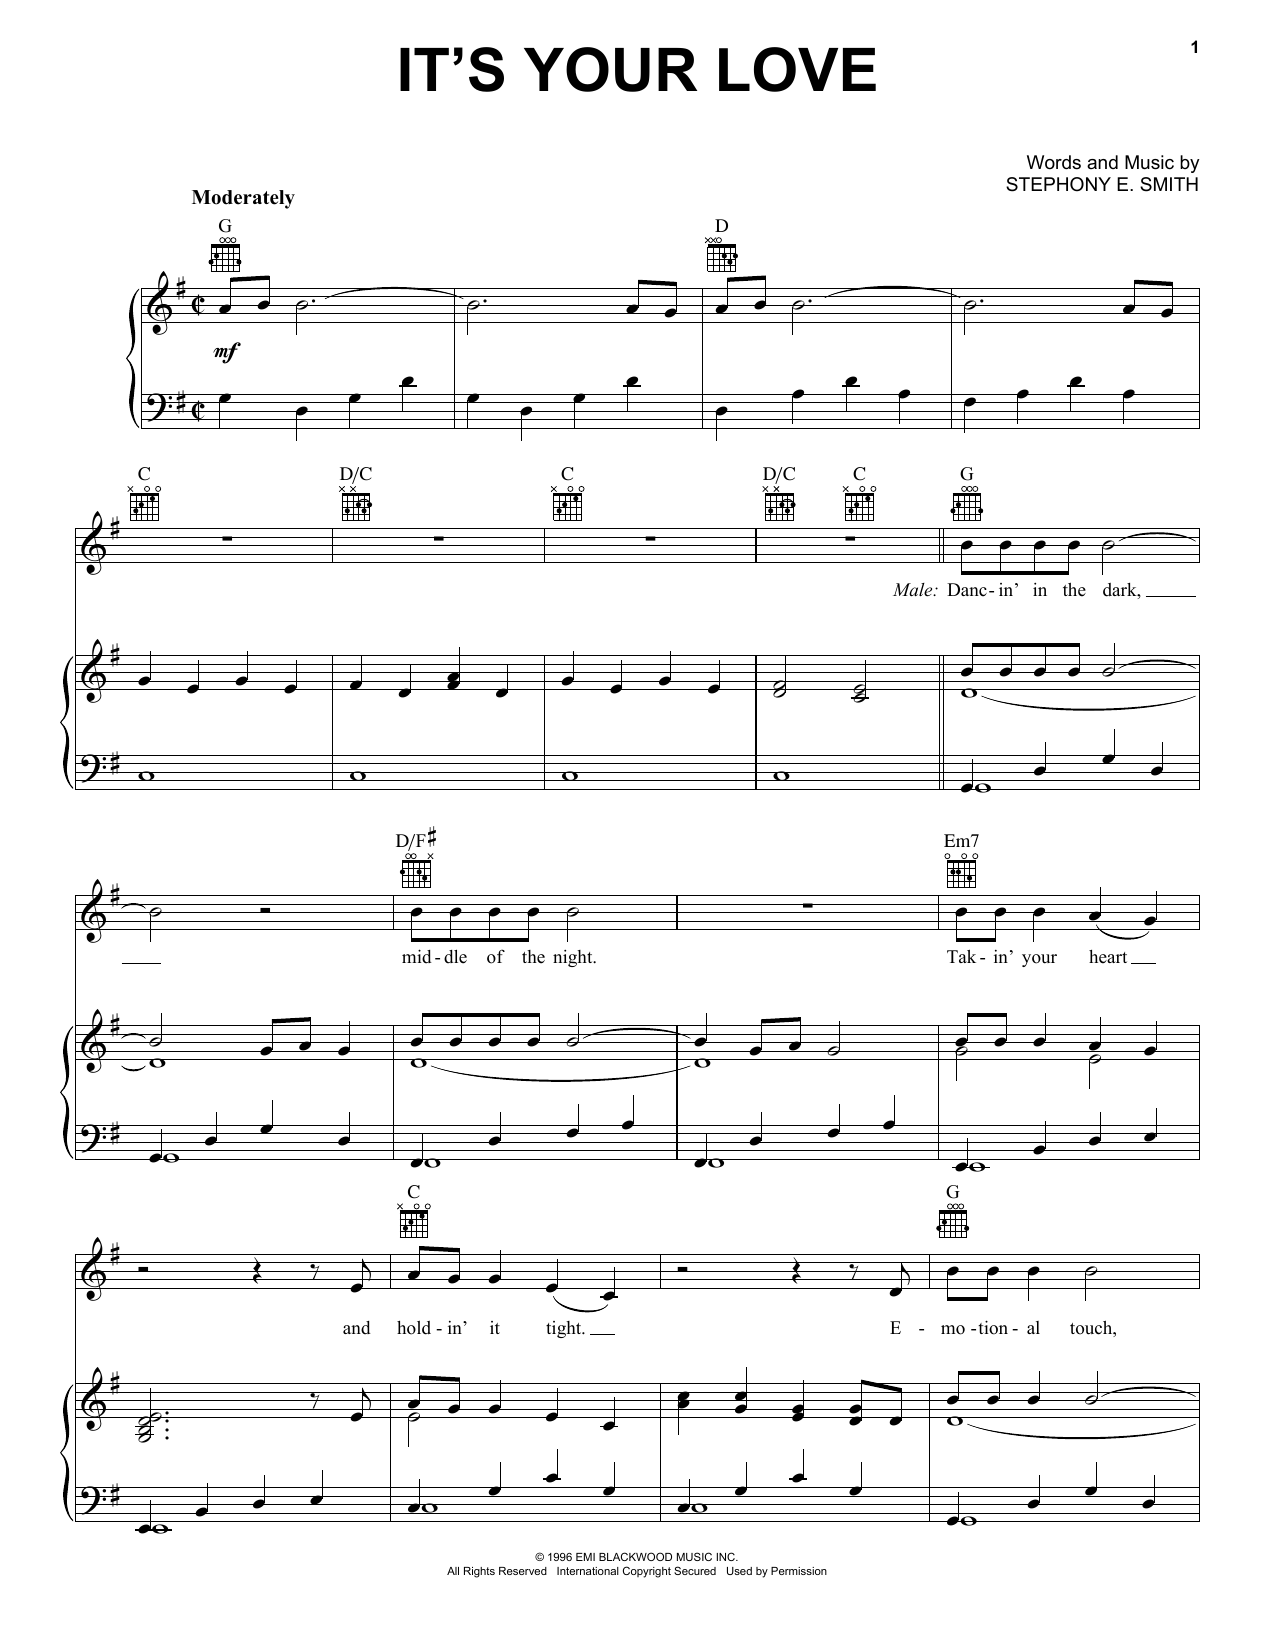 It's Your Love sheet music